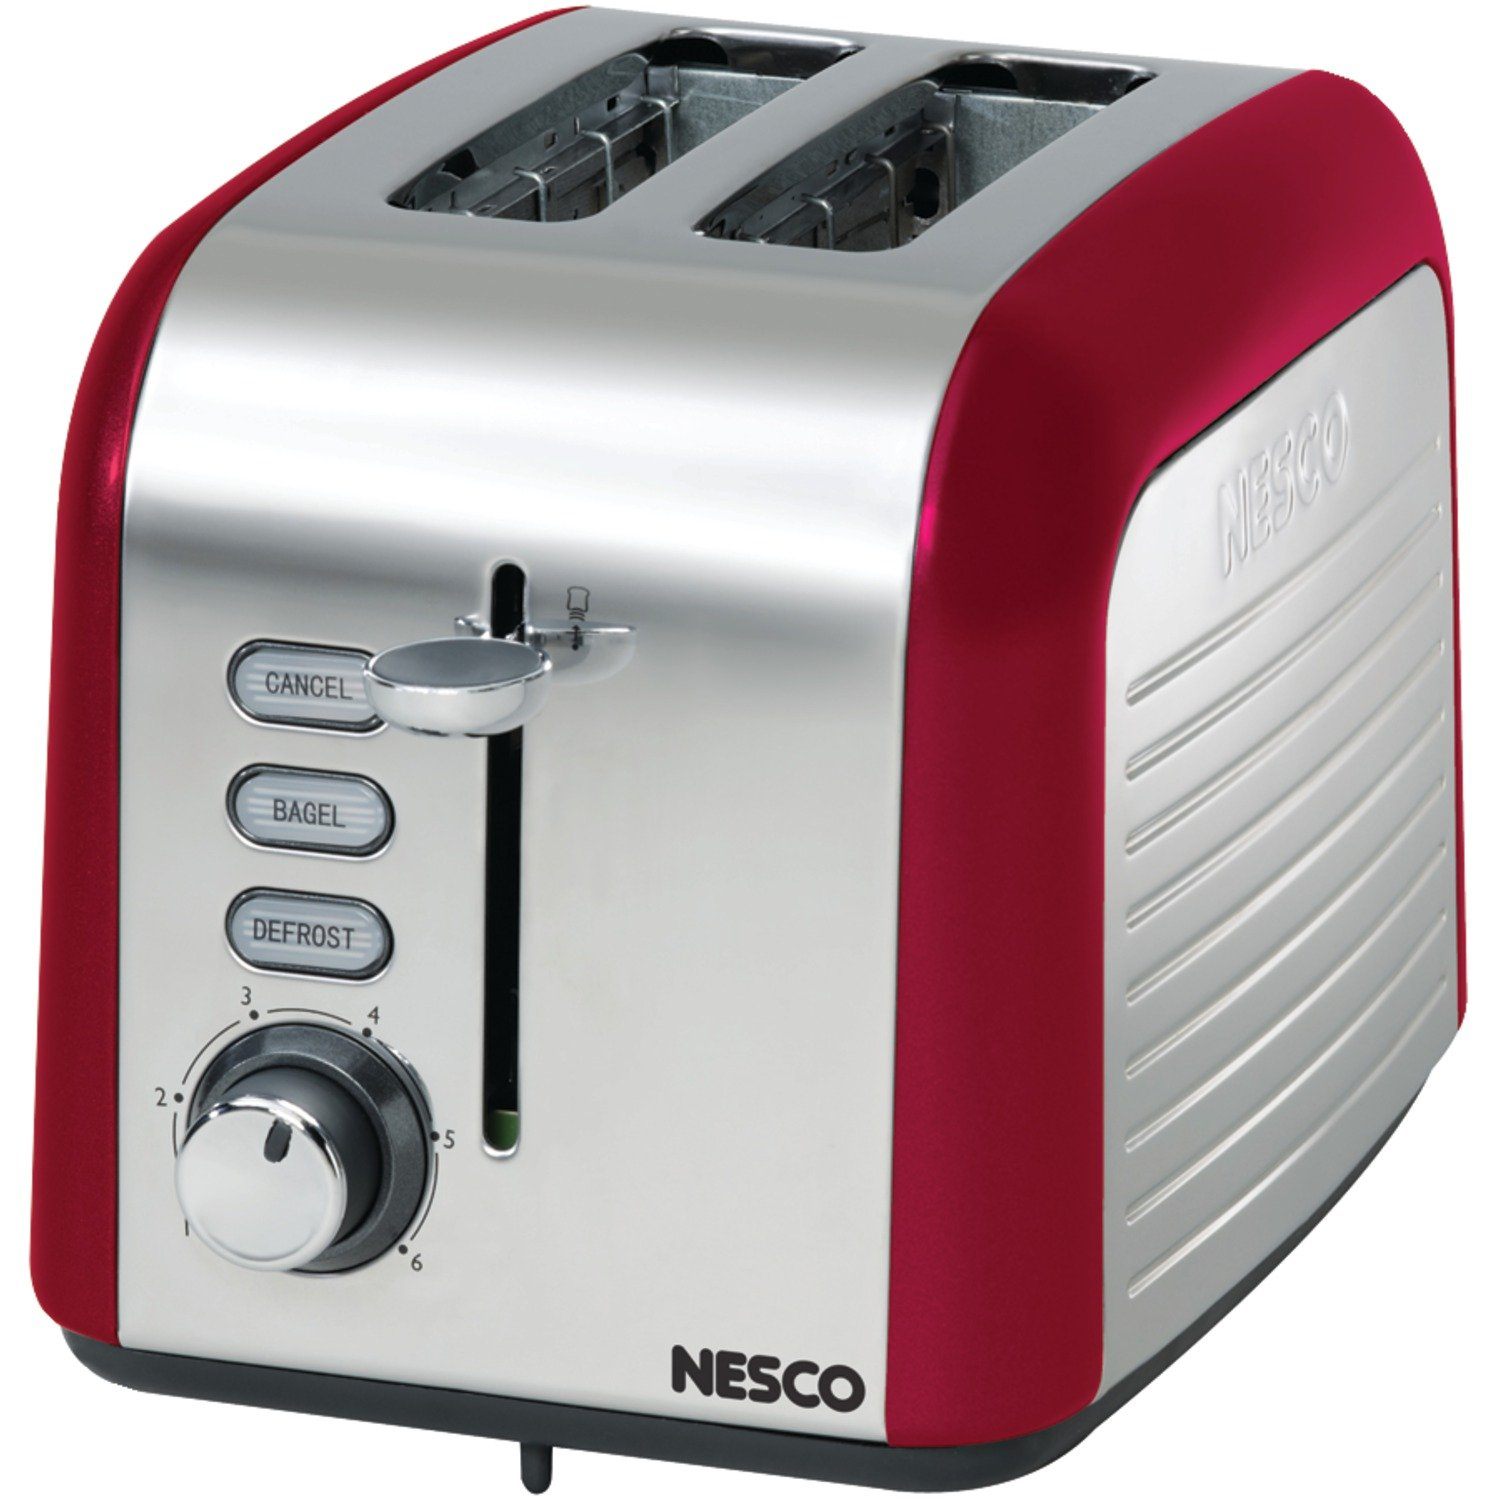 Nesco T1000-12 Toaster Black Friday Deal 2019